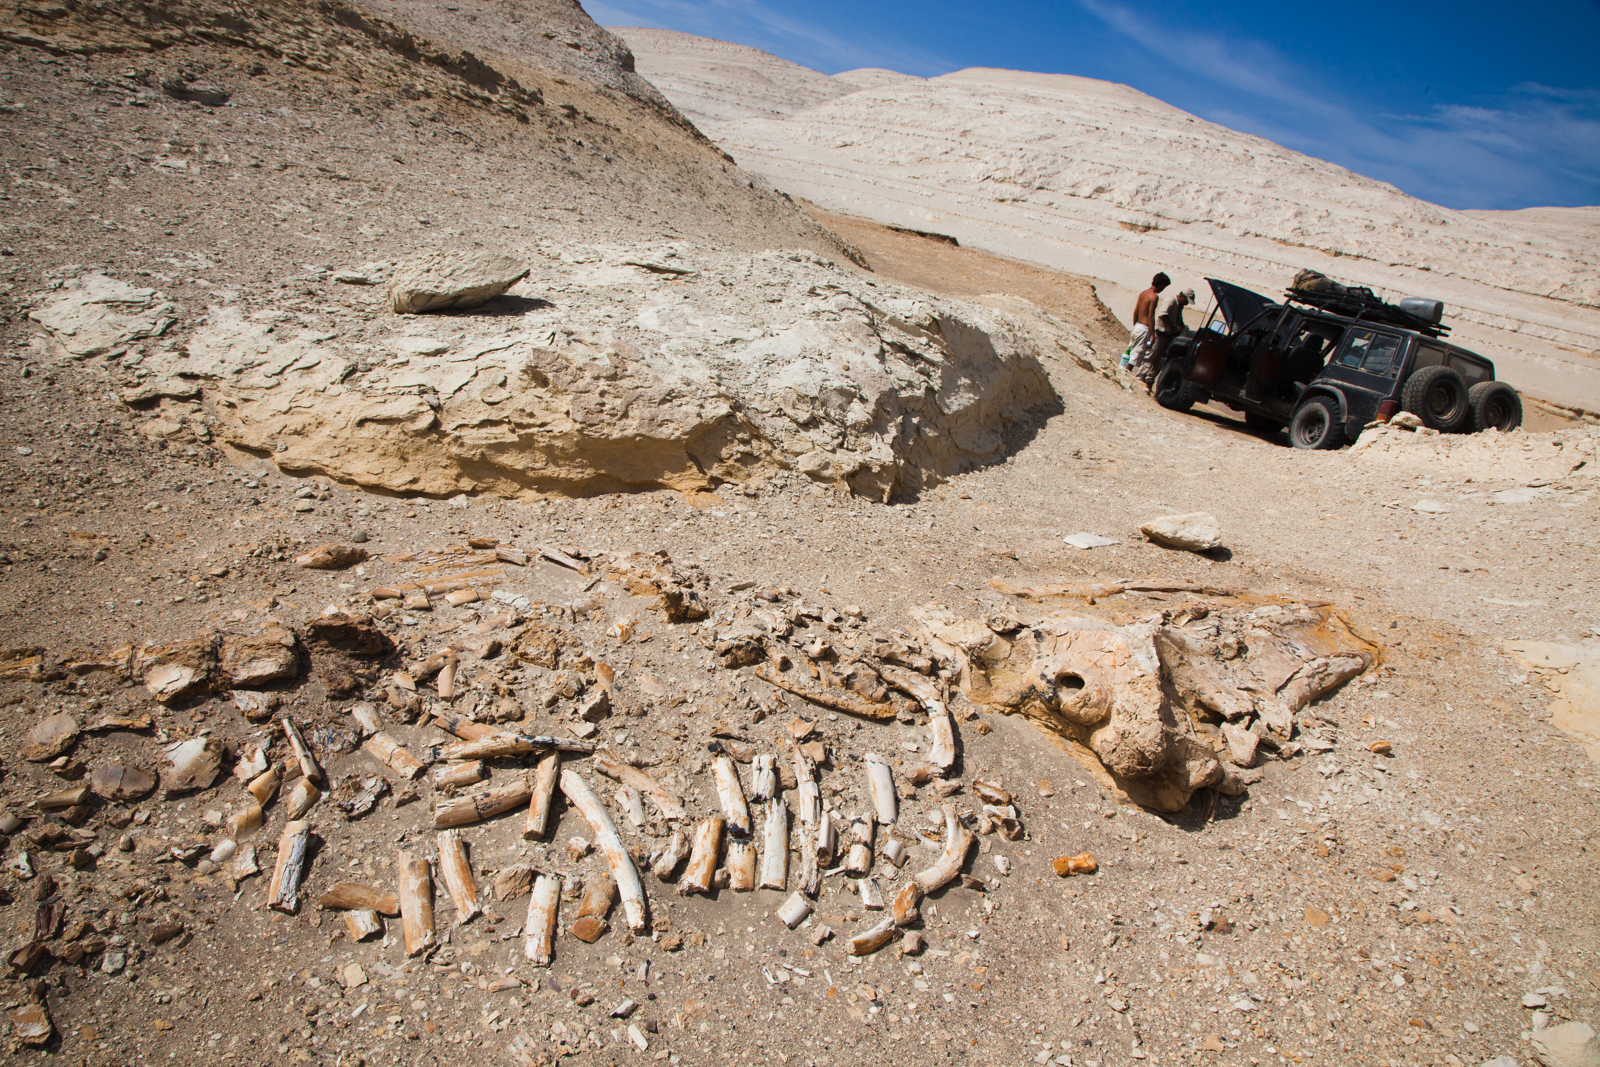 Whale skeleton. Credit: Andy Isaacson